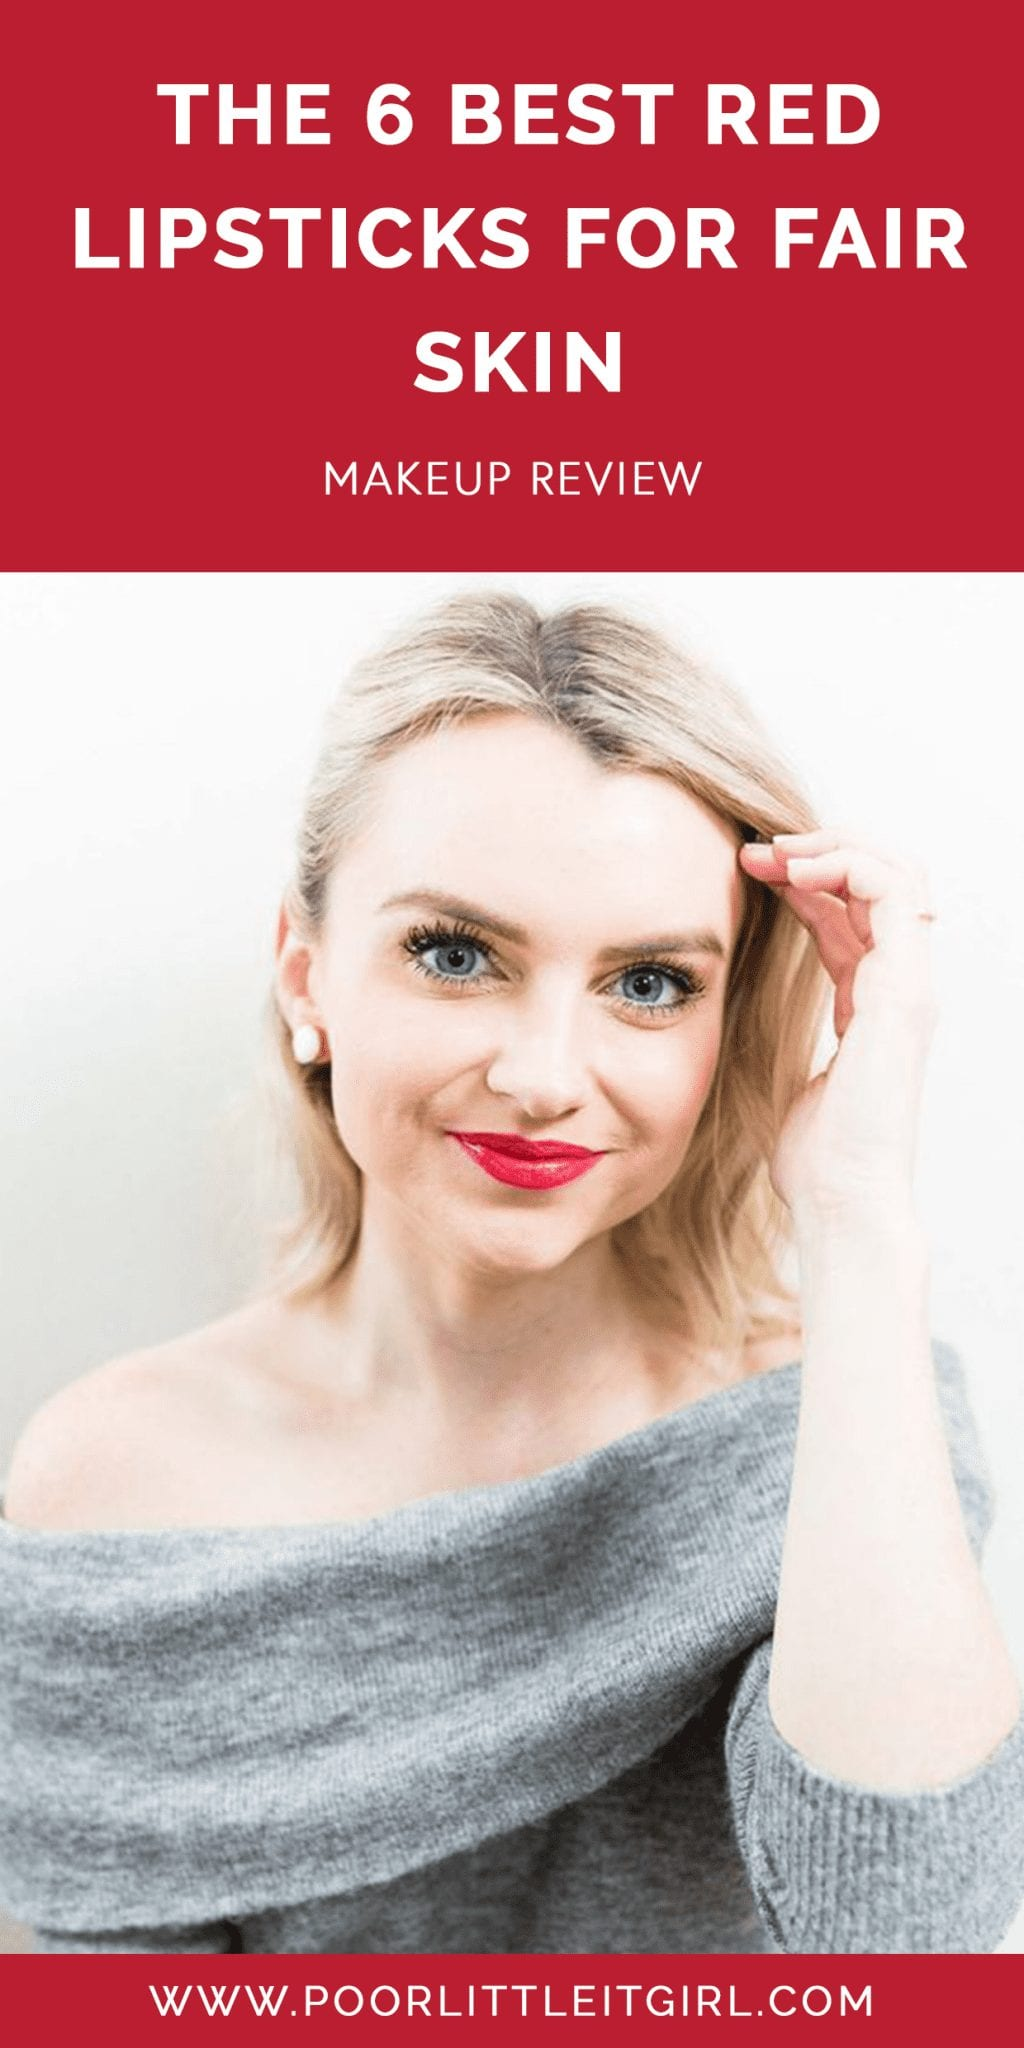 The Best Red Lipstick For Fair Skin - Poor Little It Girl || If you have fair skin and finding the right red match for your skin is difficult, do not stress. Today, I'm sharing the best red lipstick for fair skin. || #poorlittleitgirl #redlipstick #fairskin #makeup